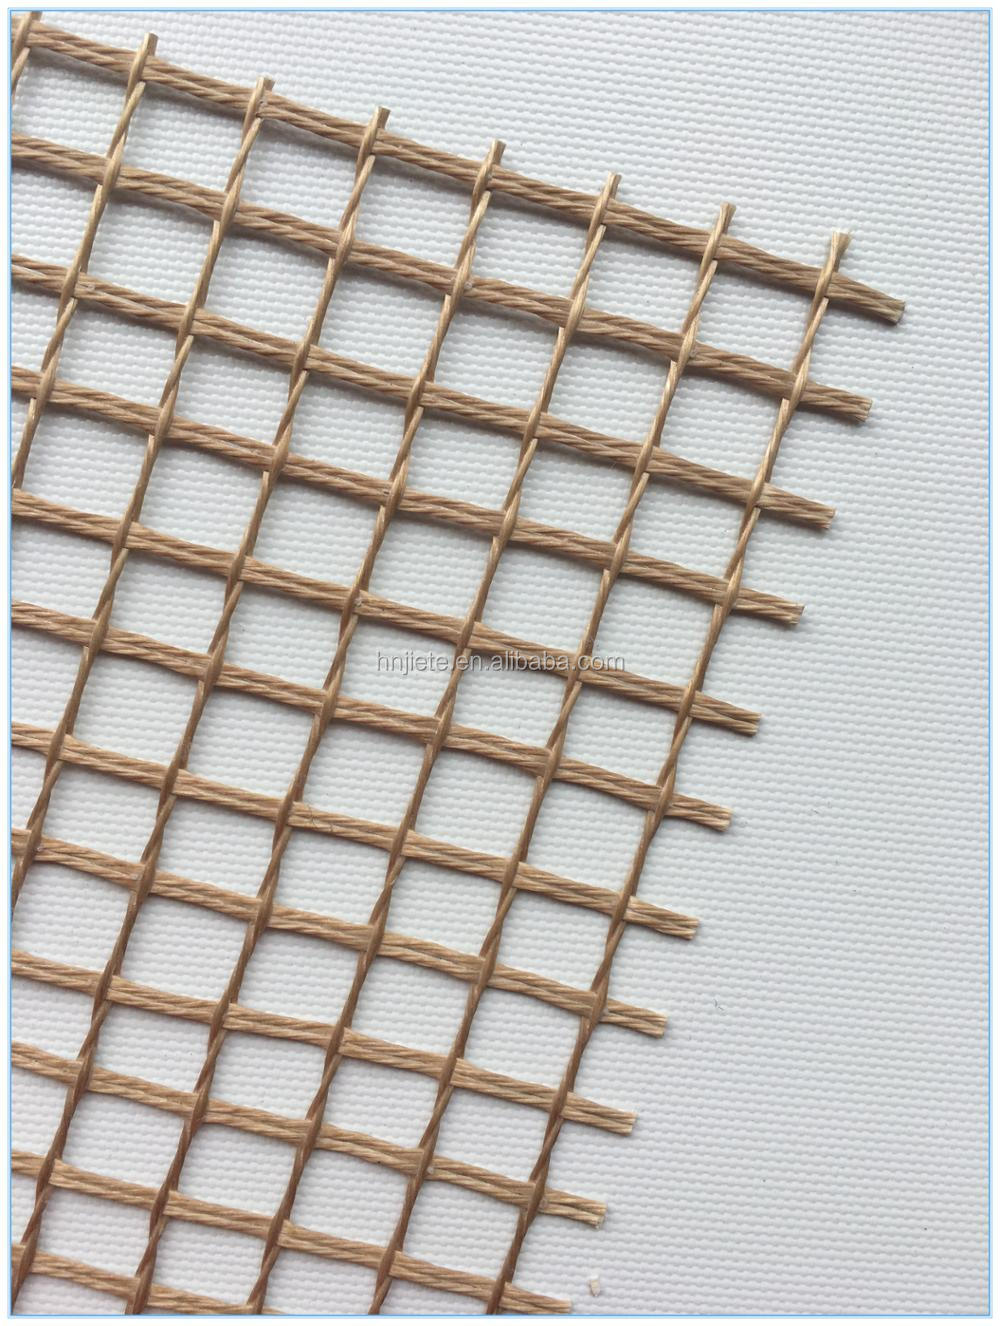 Cheap all types ptfe teflon coated fiberglass mesh